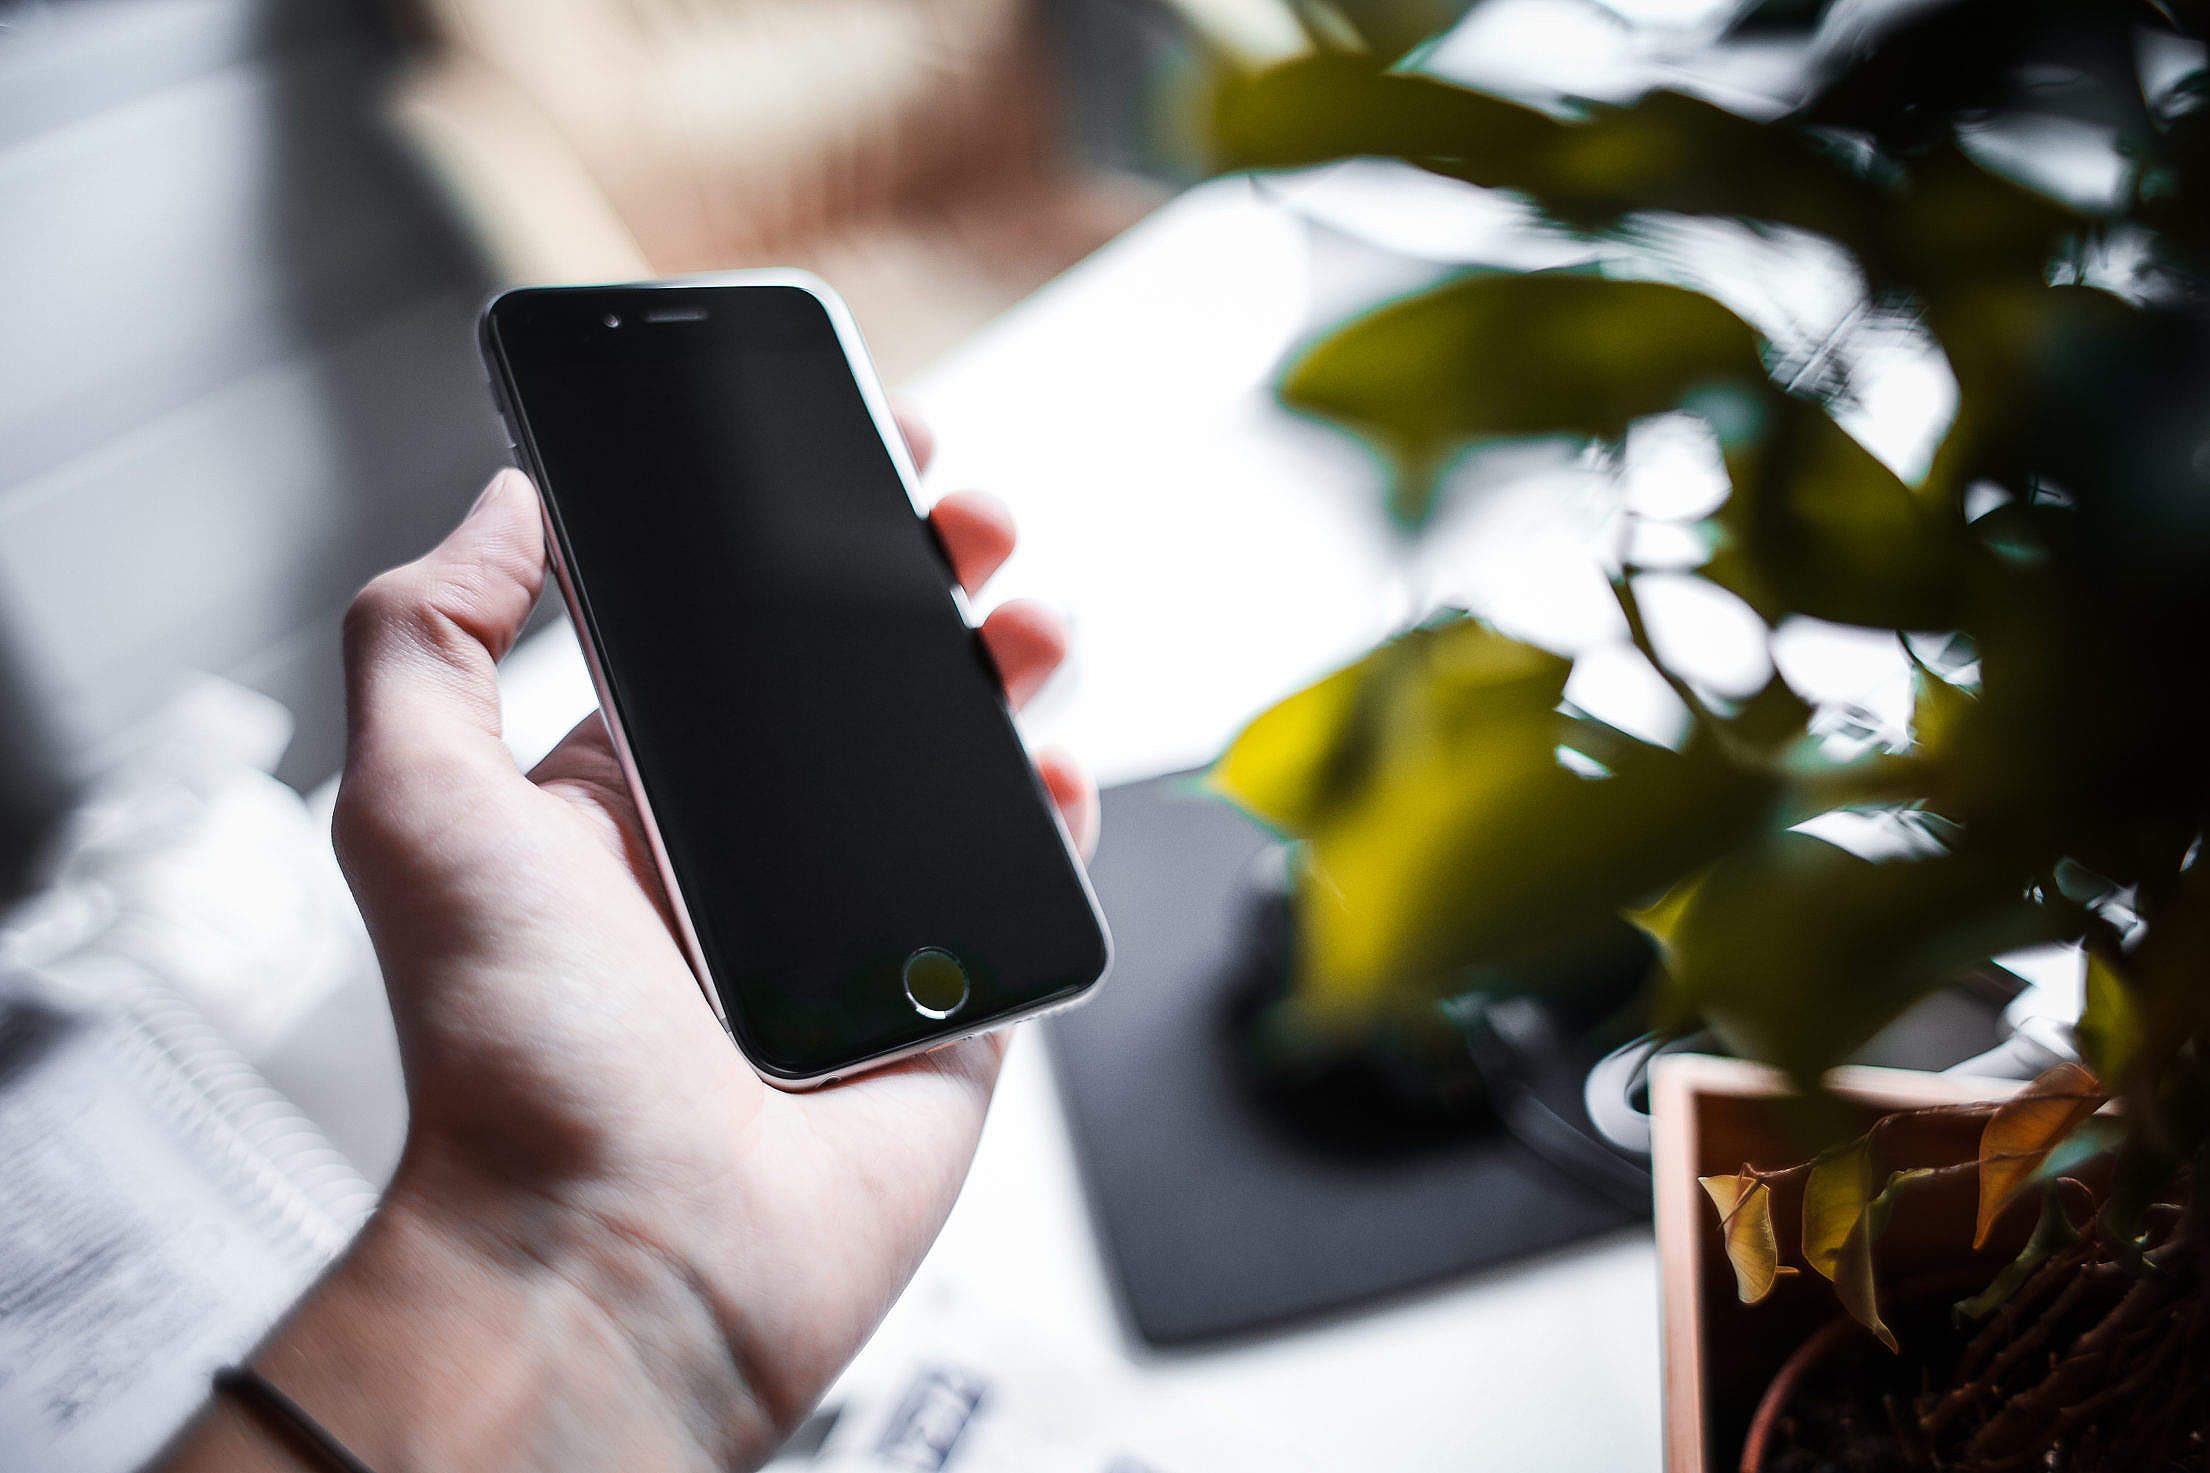 Download iPhone 6 Space Gray in Green Leaves Free Stock Photo